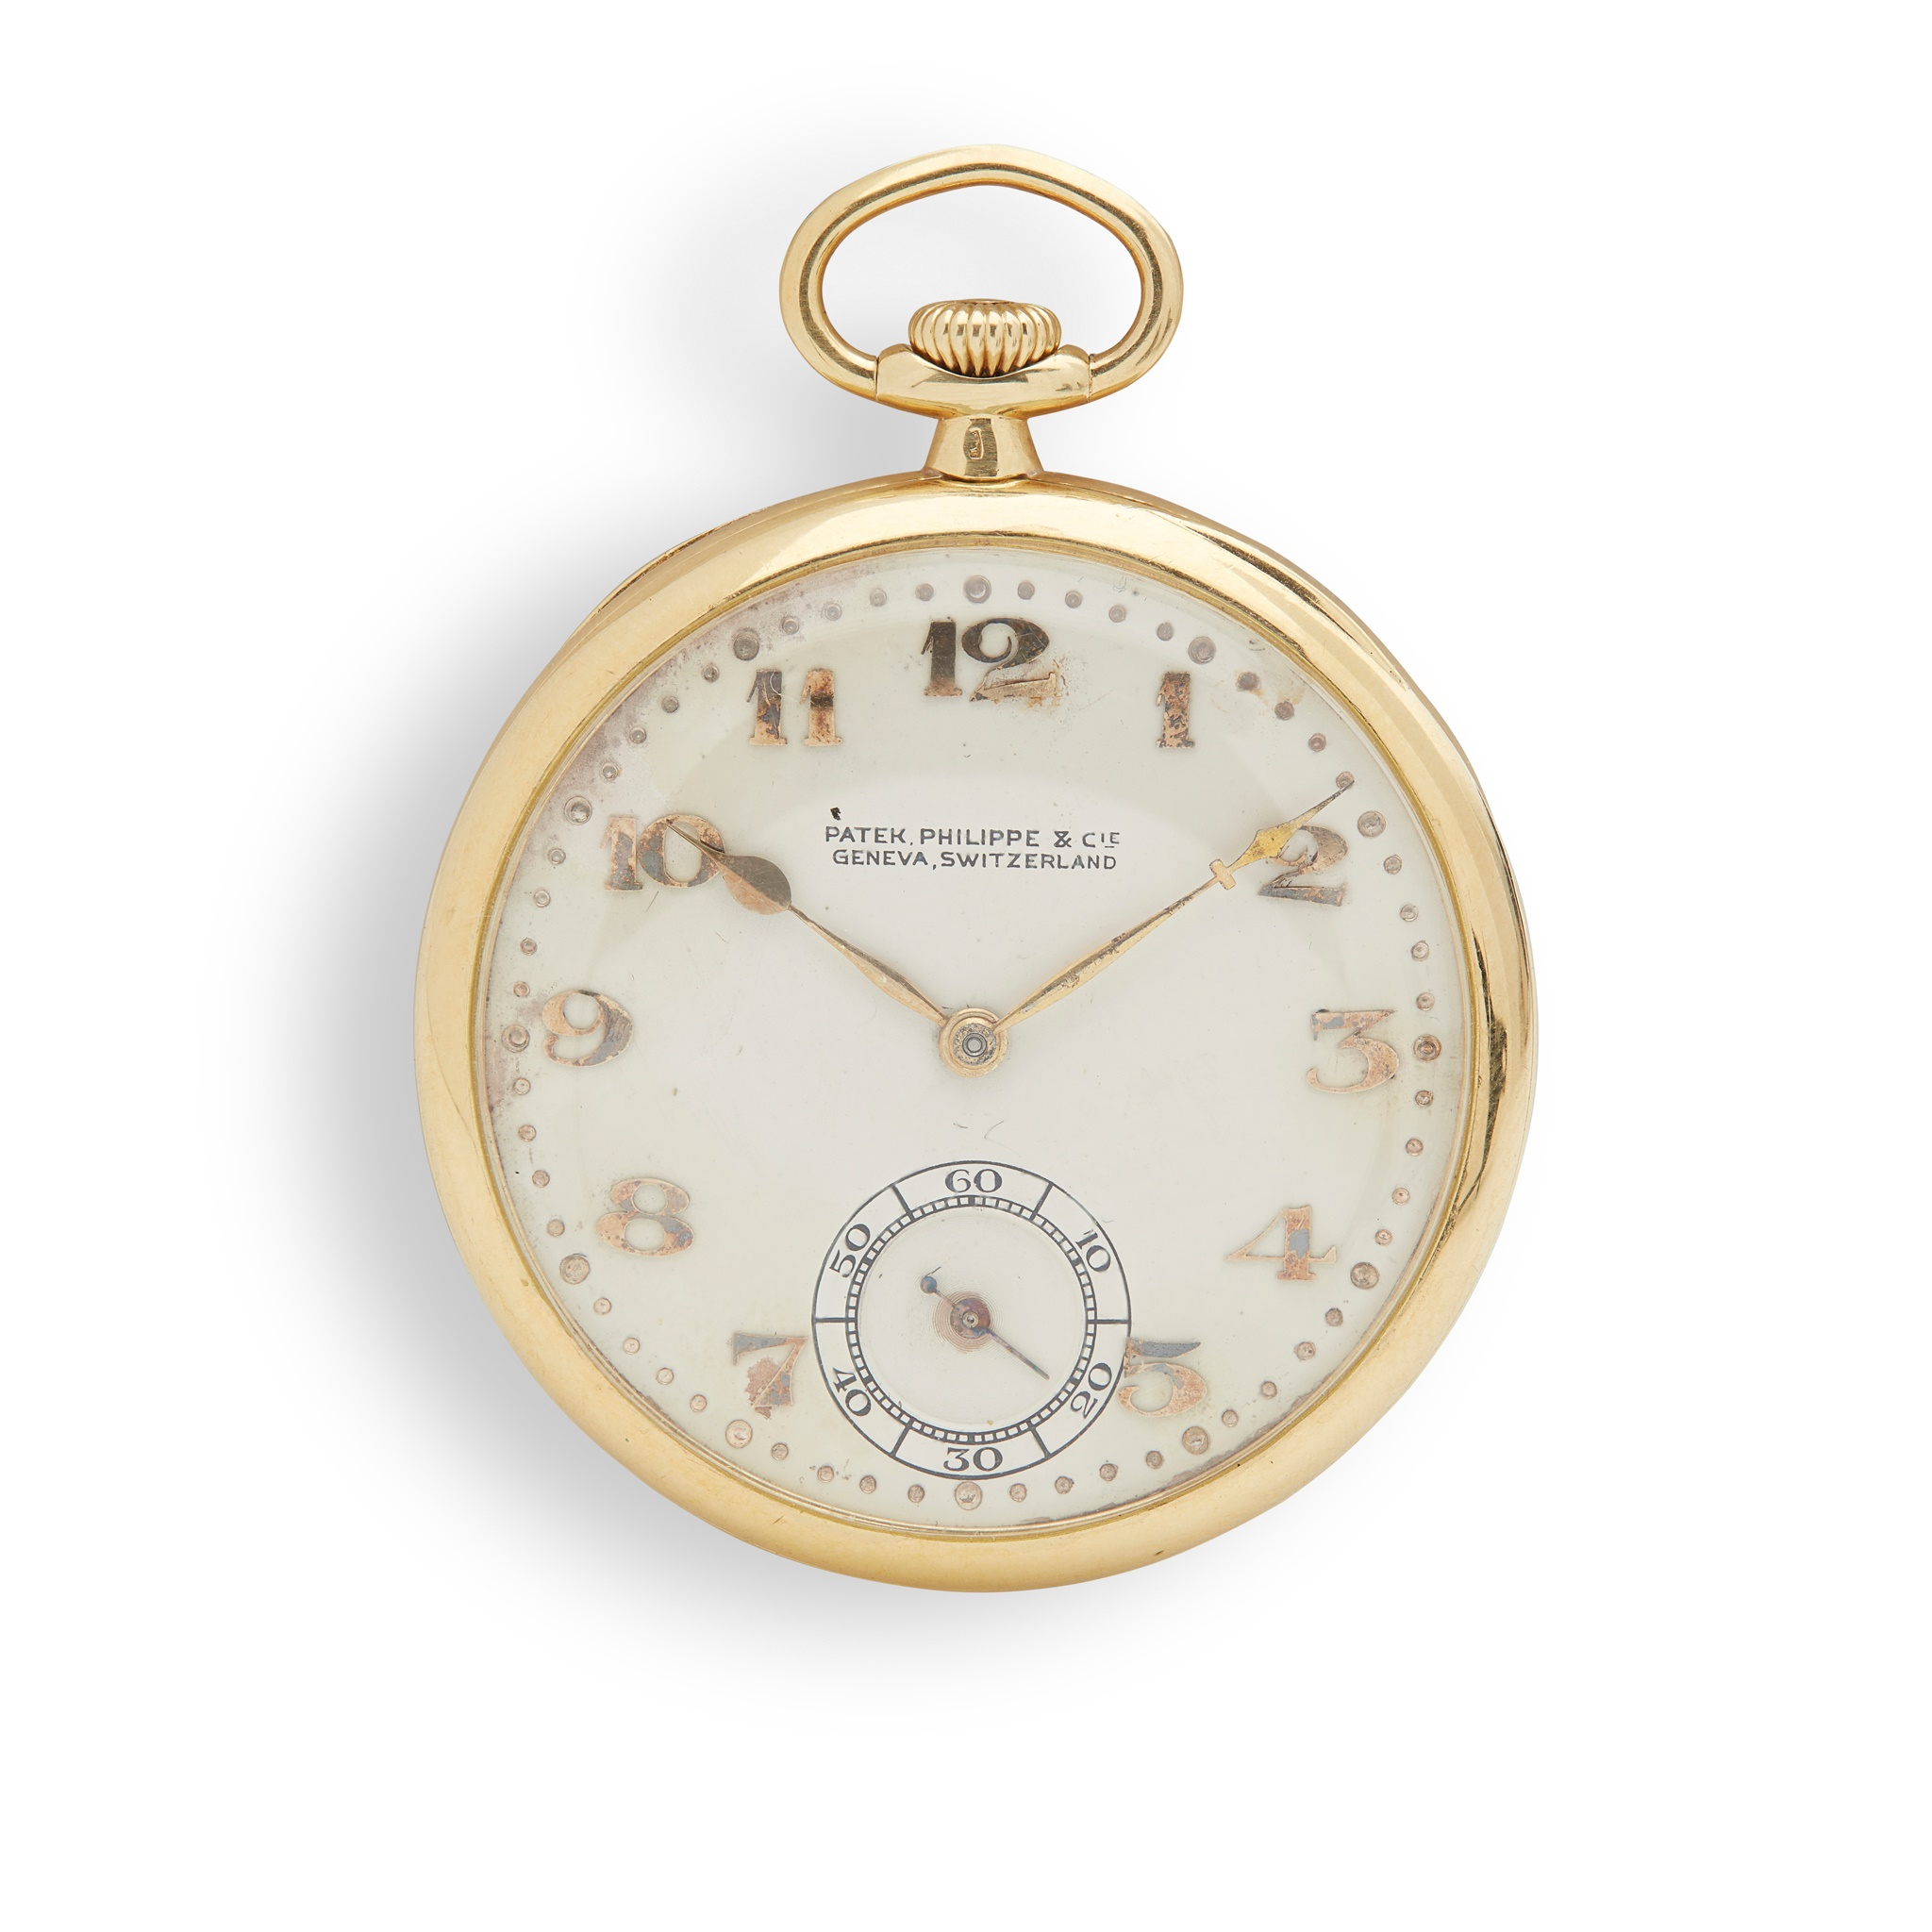 Patek Philippe: a gold pocket watch 18ct gold case, open face keyless wind, signed Patek Philippe - Image 2 of 2